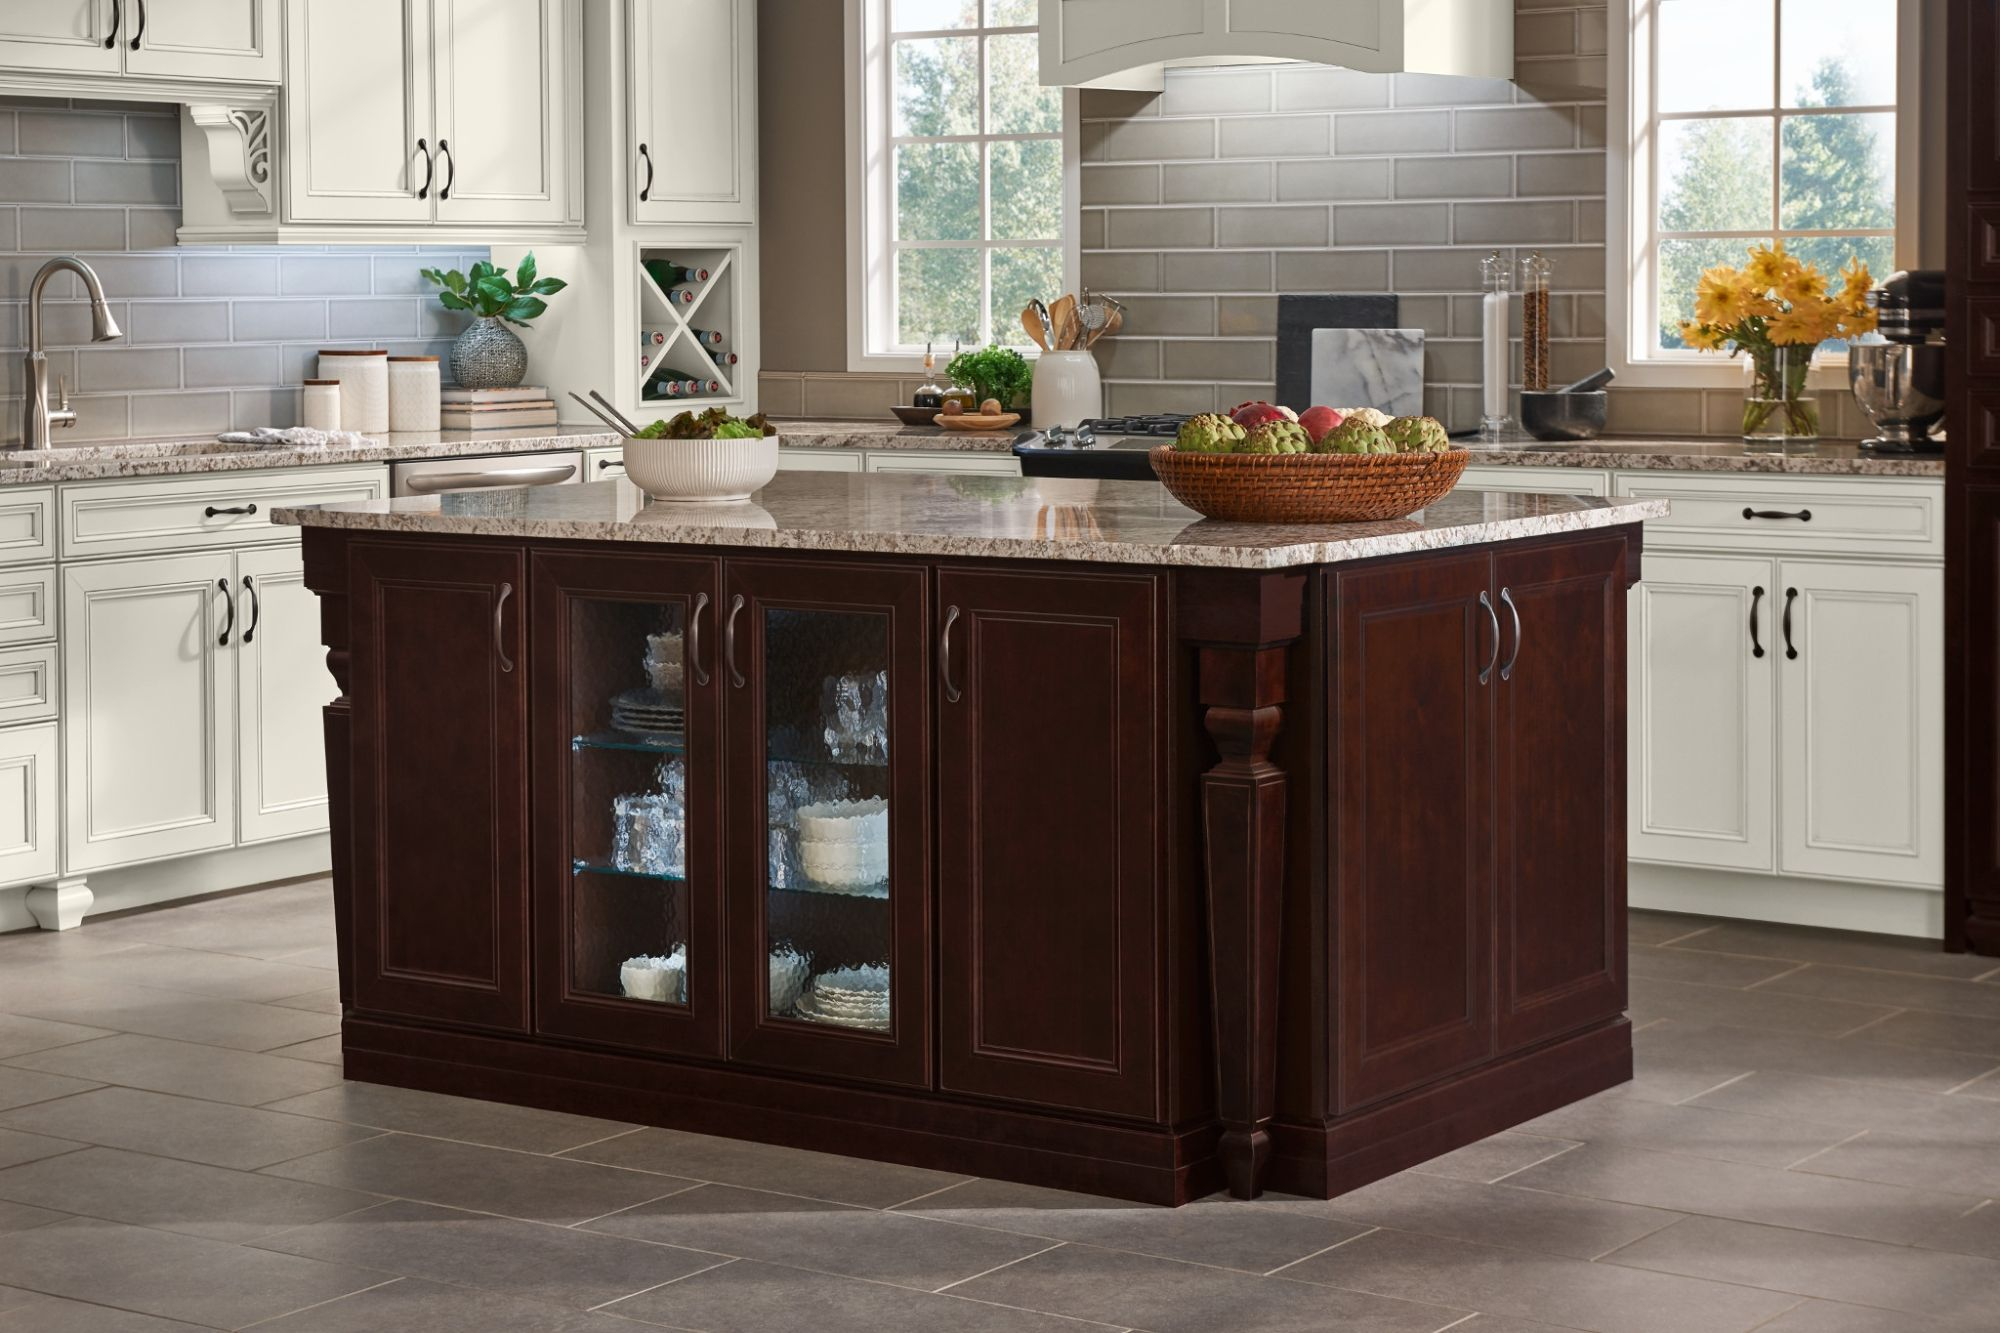 American Woodmark Macarthur Kcma Certified And Kcma Responsible And Sustaina Inexpensive Kitchen Cabinets Semi Custom Kitchen Cabinets Custom Kitchen Cabinets